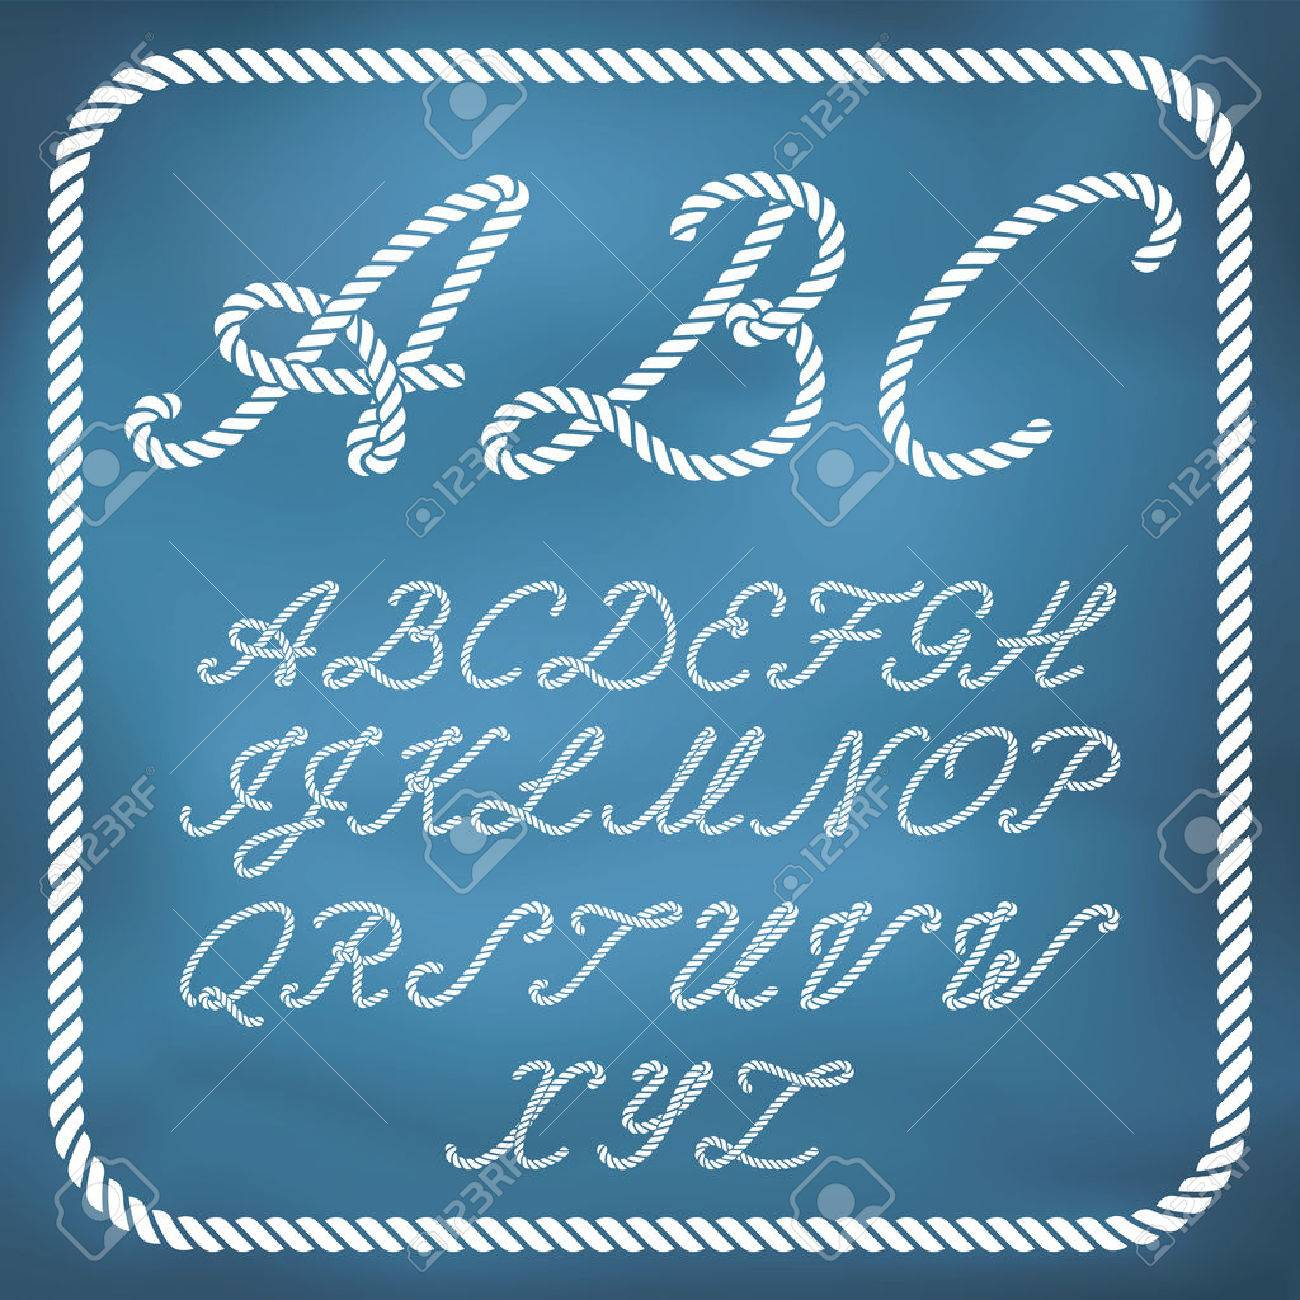 Letters made from nautical rope - hand written font - 42747467